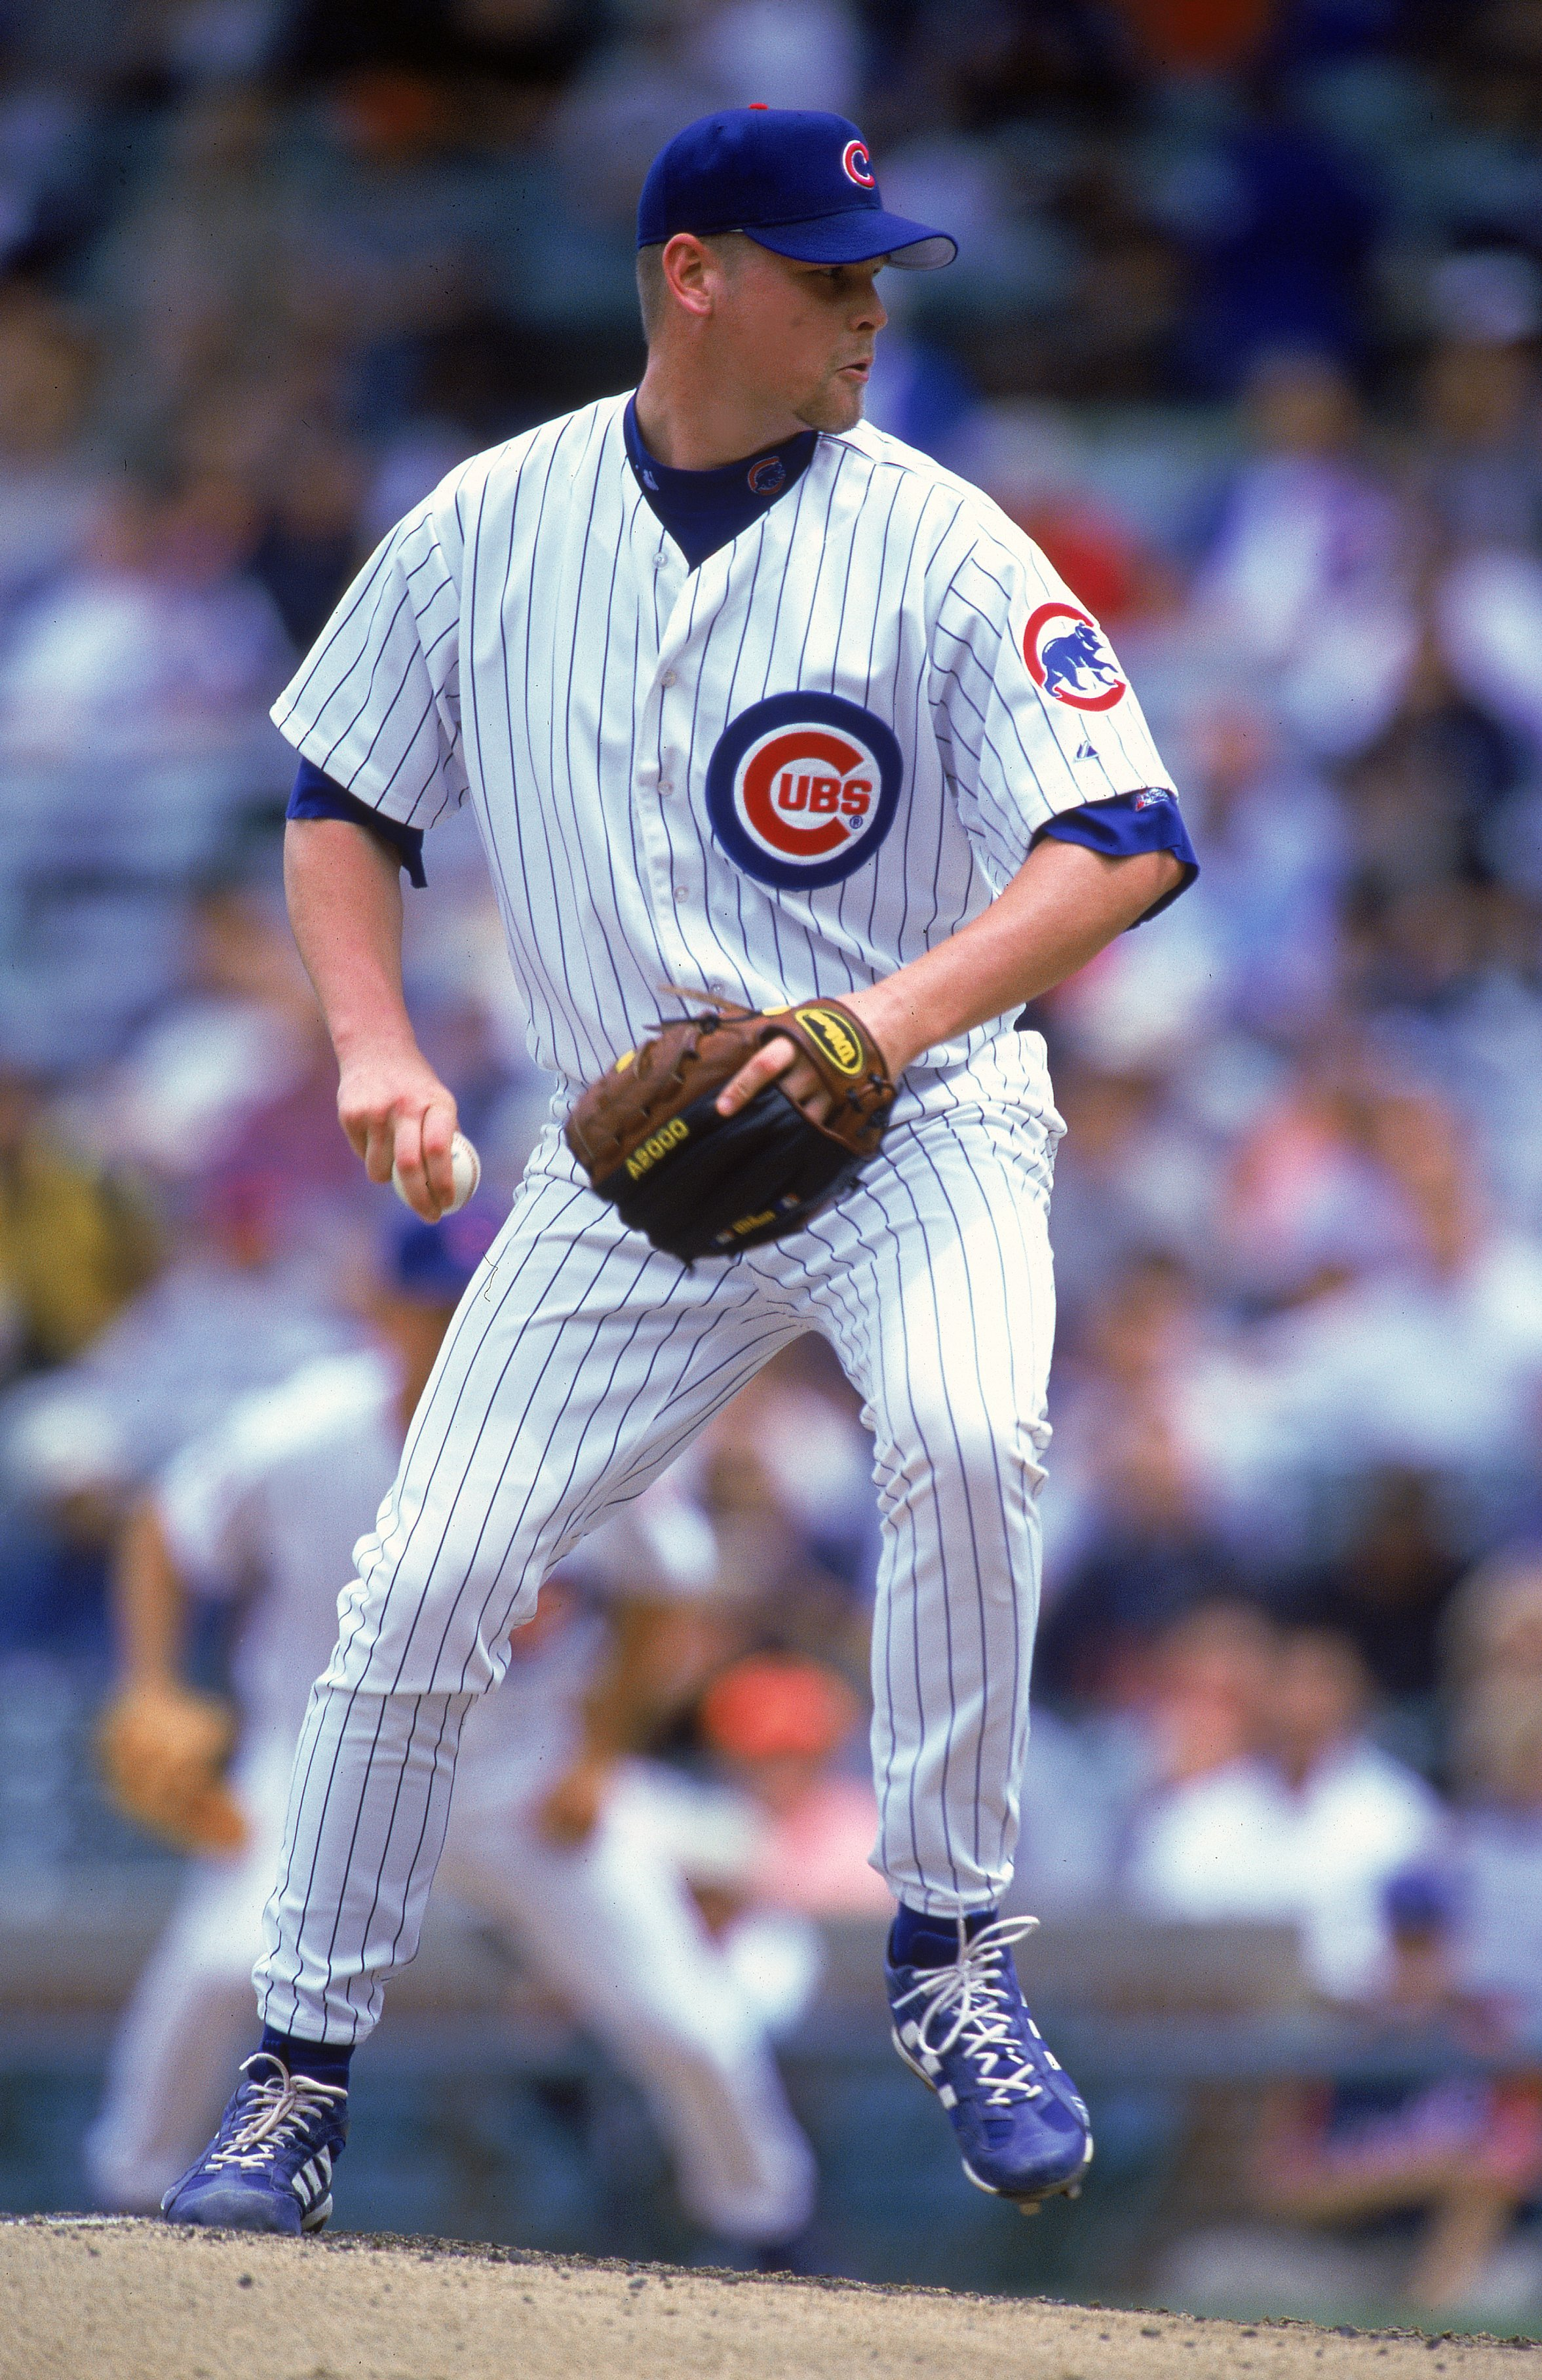 16 Jun 2000:  Pitcher Kerry Wood #34 of the Chicago Cubs winds up for the pitch during the game against the Montreal Expos at Wrigley Field in Chicago, Illinois.  The Cubs defeated the Expos 9-8.Mandatory Credit: Jonathan Daniel  /Allsport